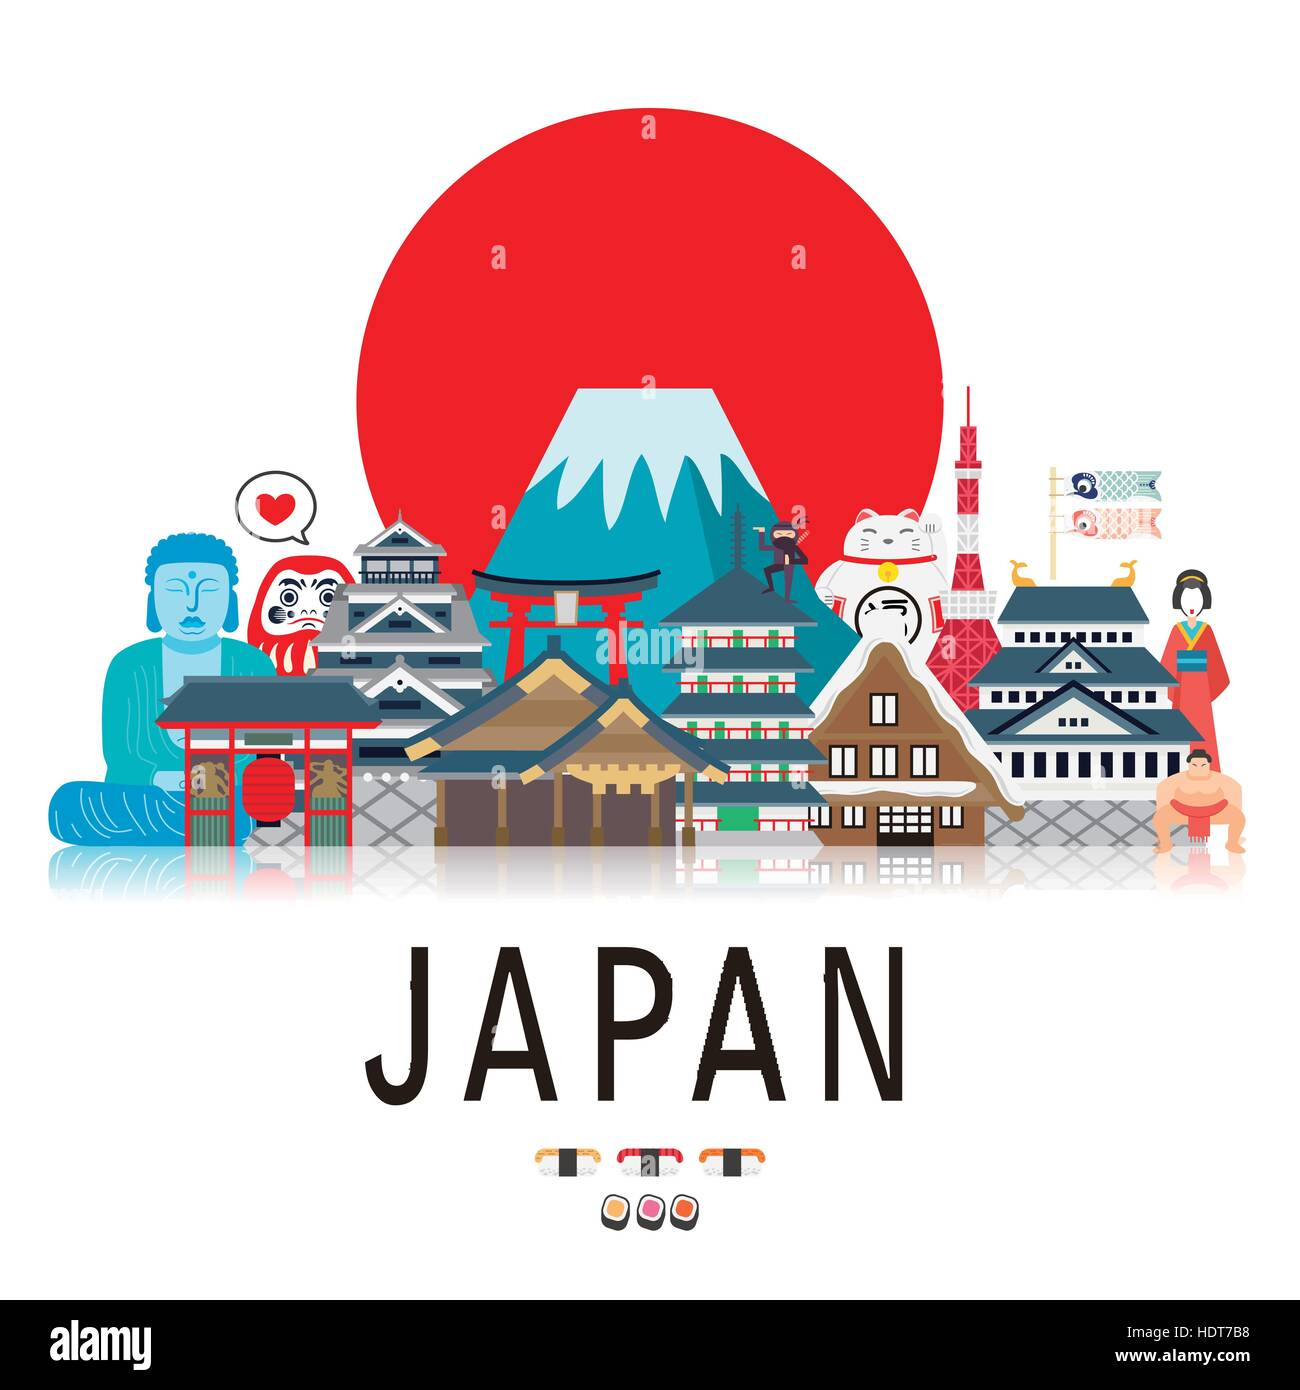 Poster design japan -  Attractive Japan Travel Poster In Flat Style Stock Photo